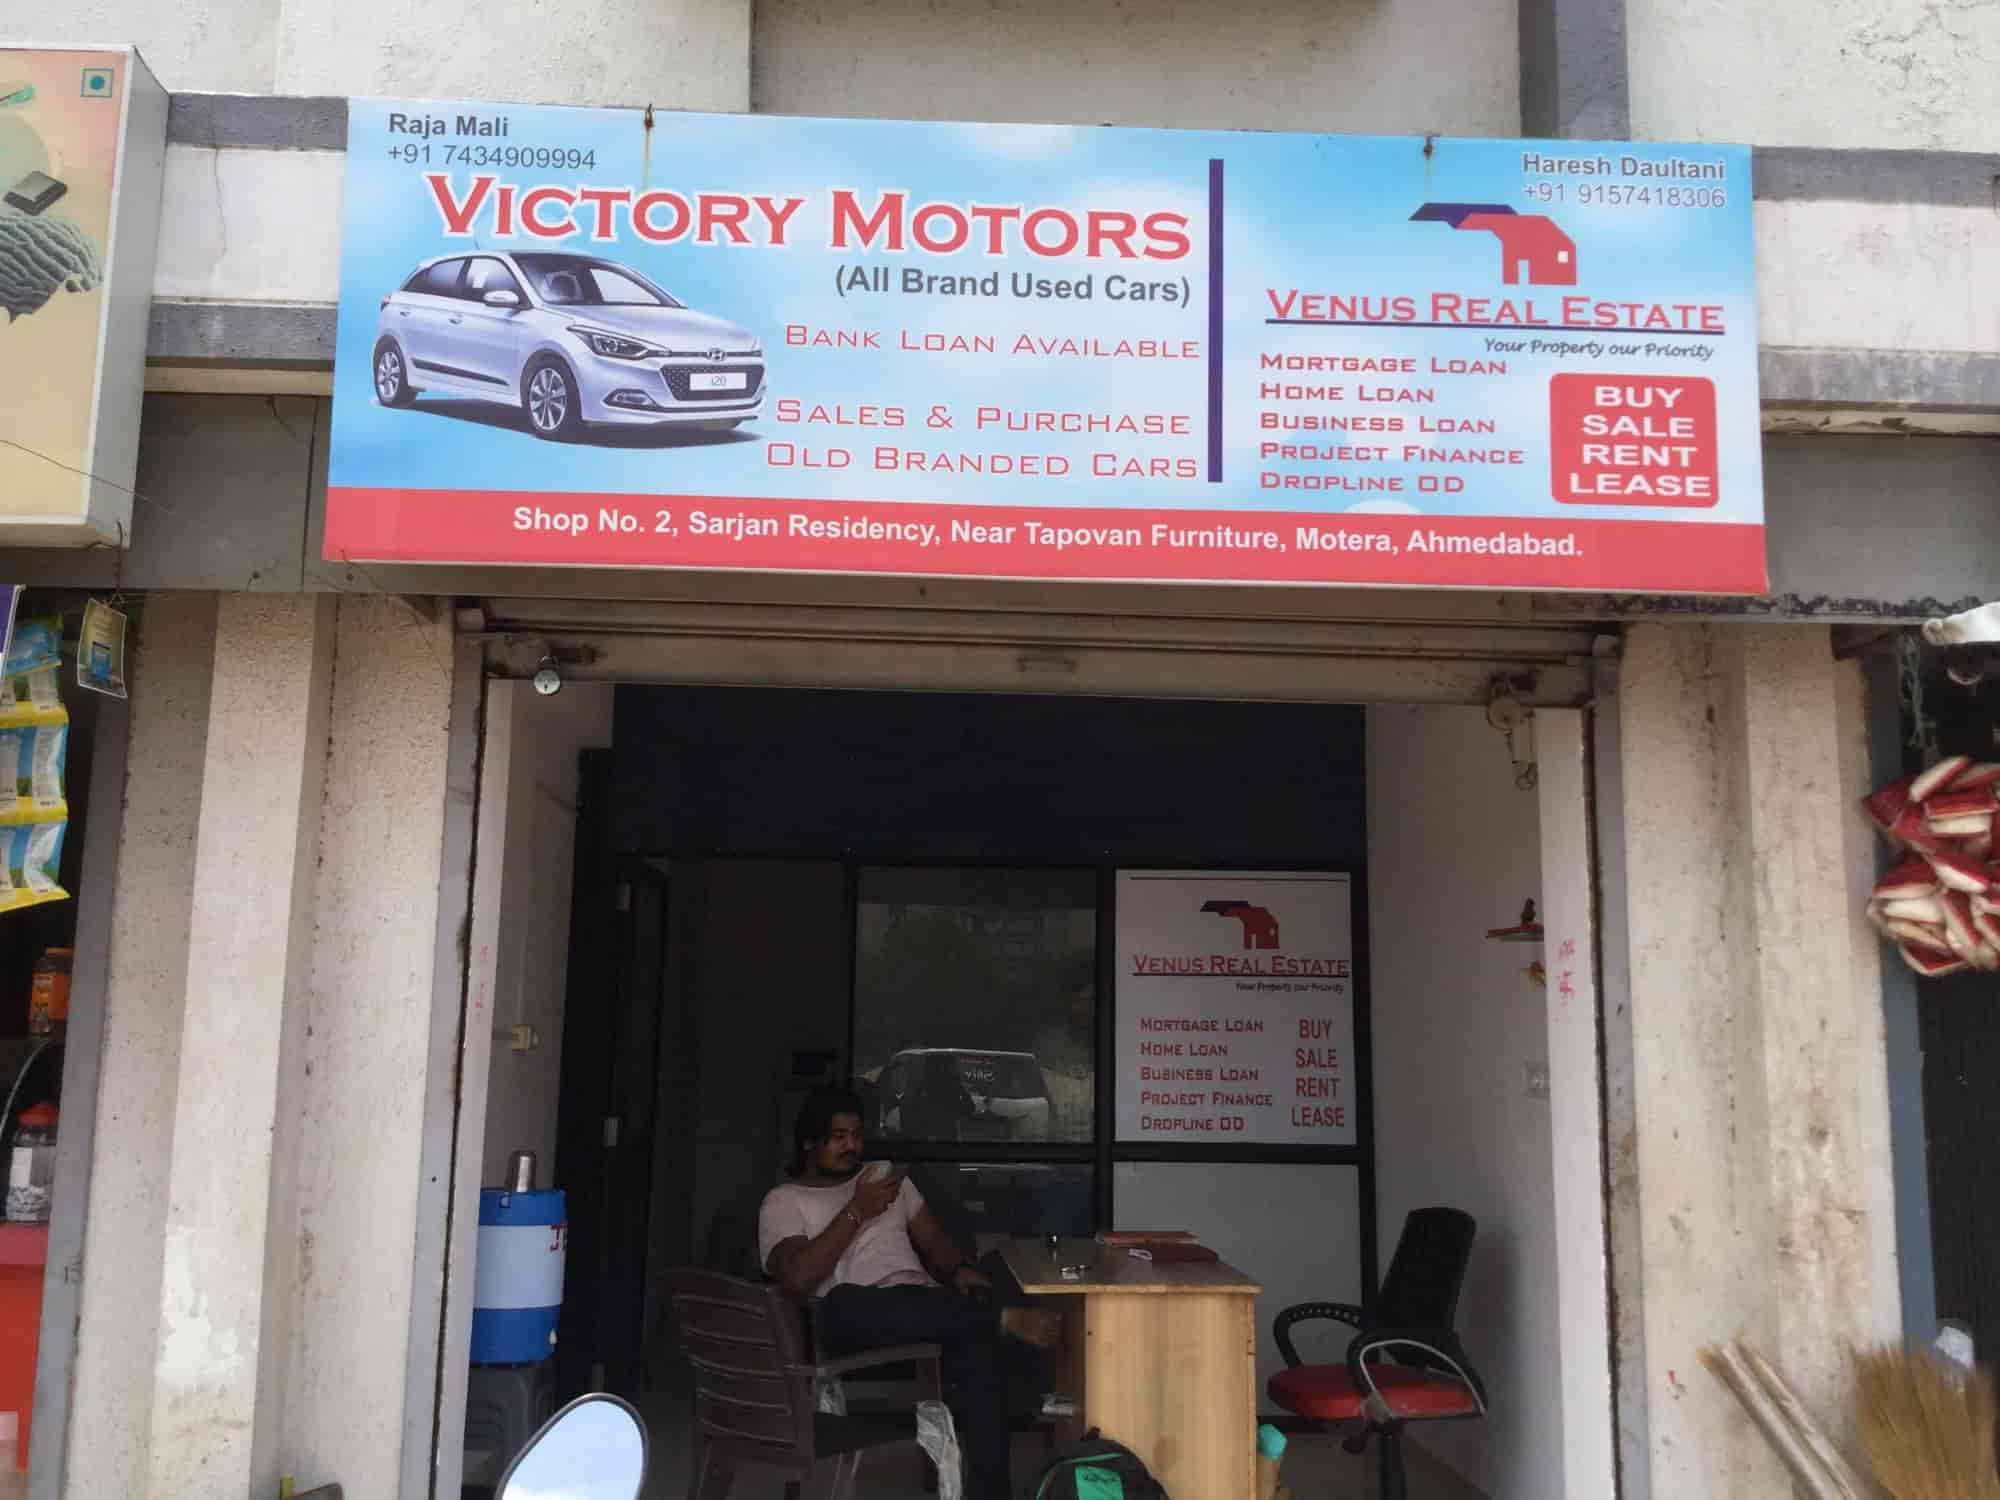 Victory Motors Motera Second Hand Car Dealers in Ahmedabad Justdial